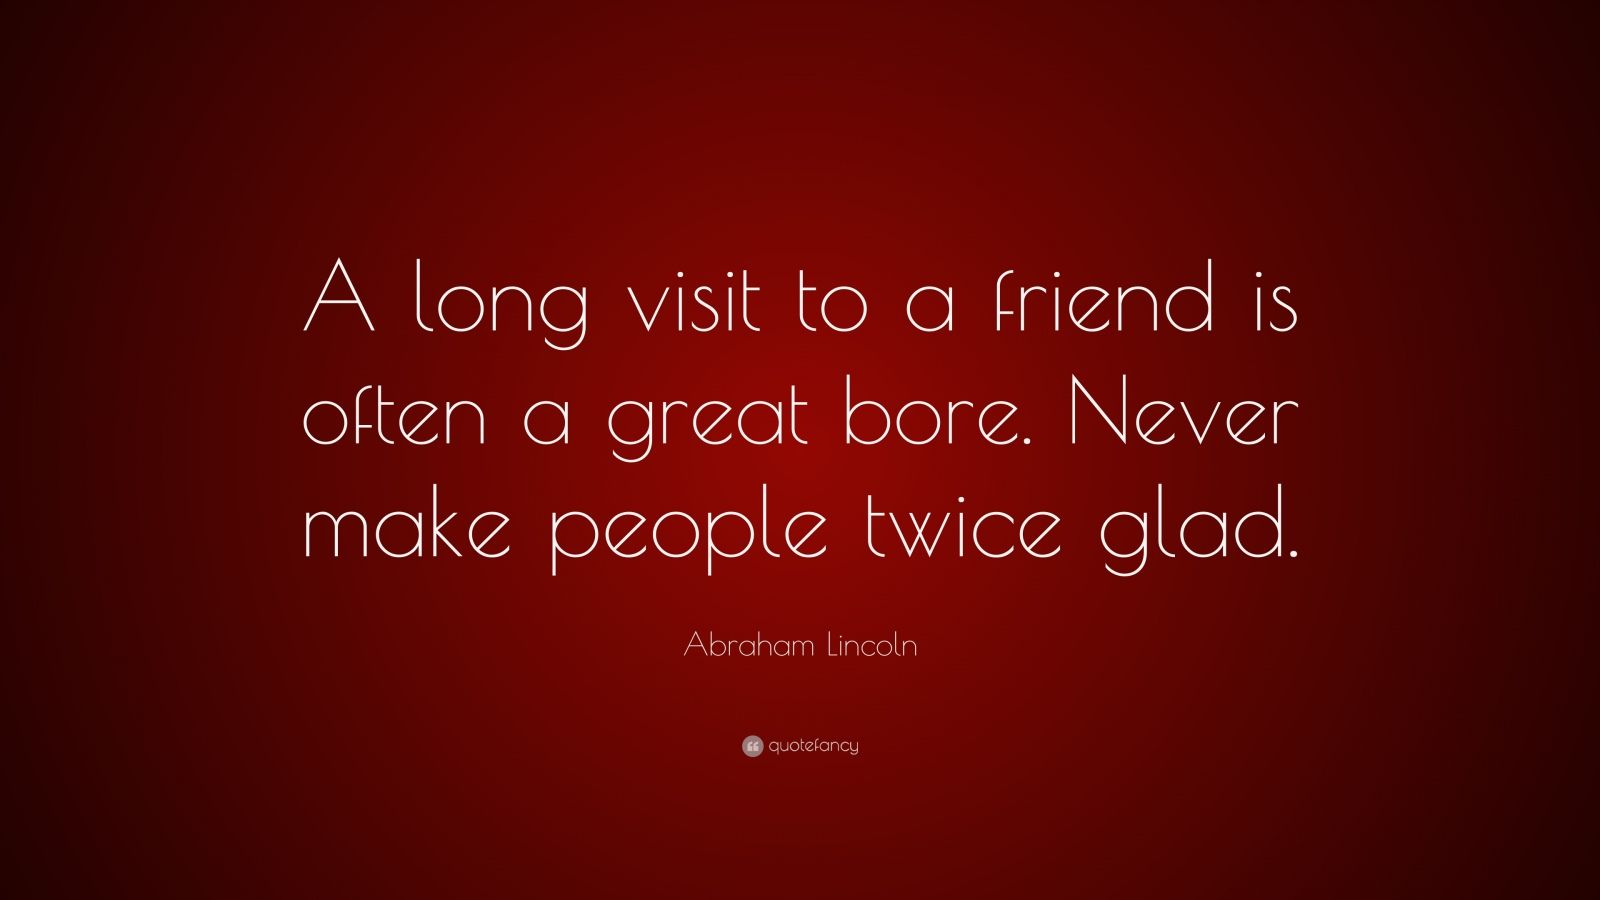 """Abraham Lincoln Quote: """"A long visit to a friend is often a great bore. Never make people twice glad."""""""